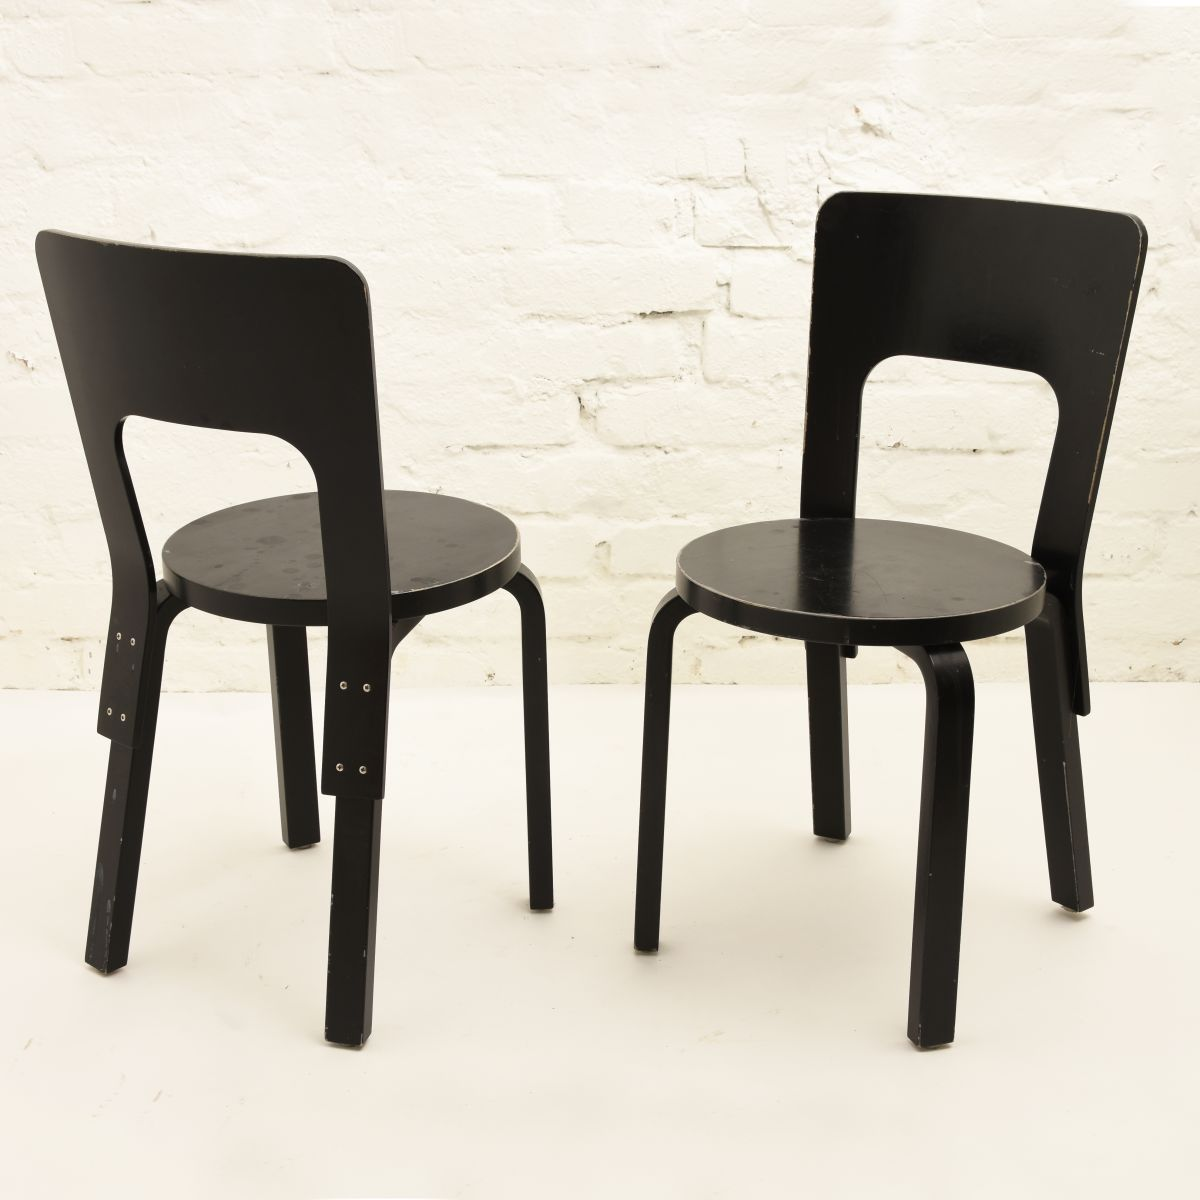 Chair_01and02